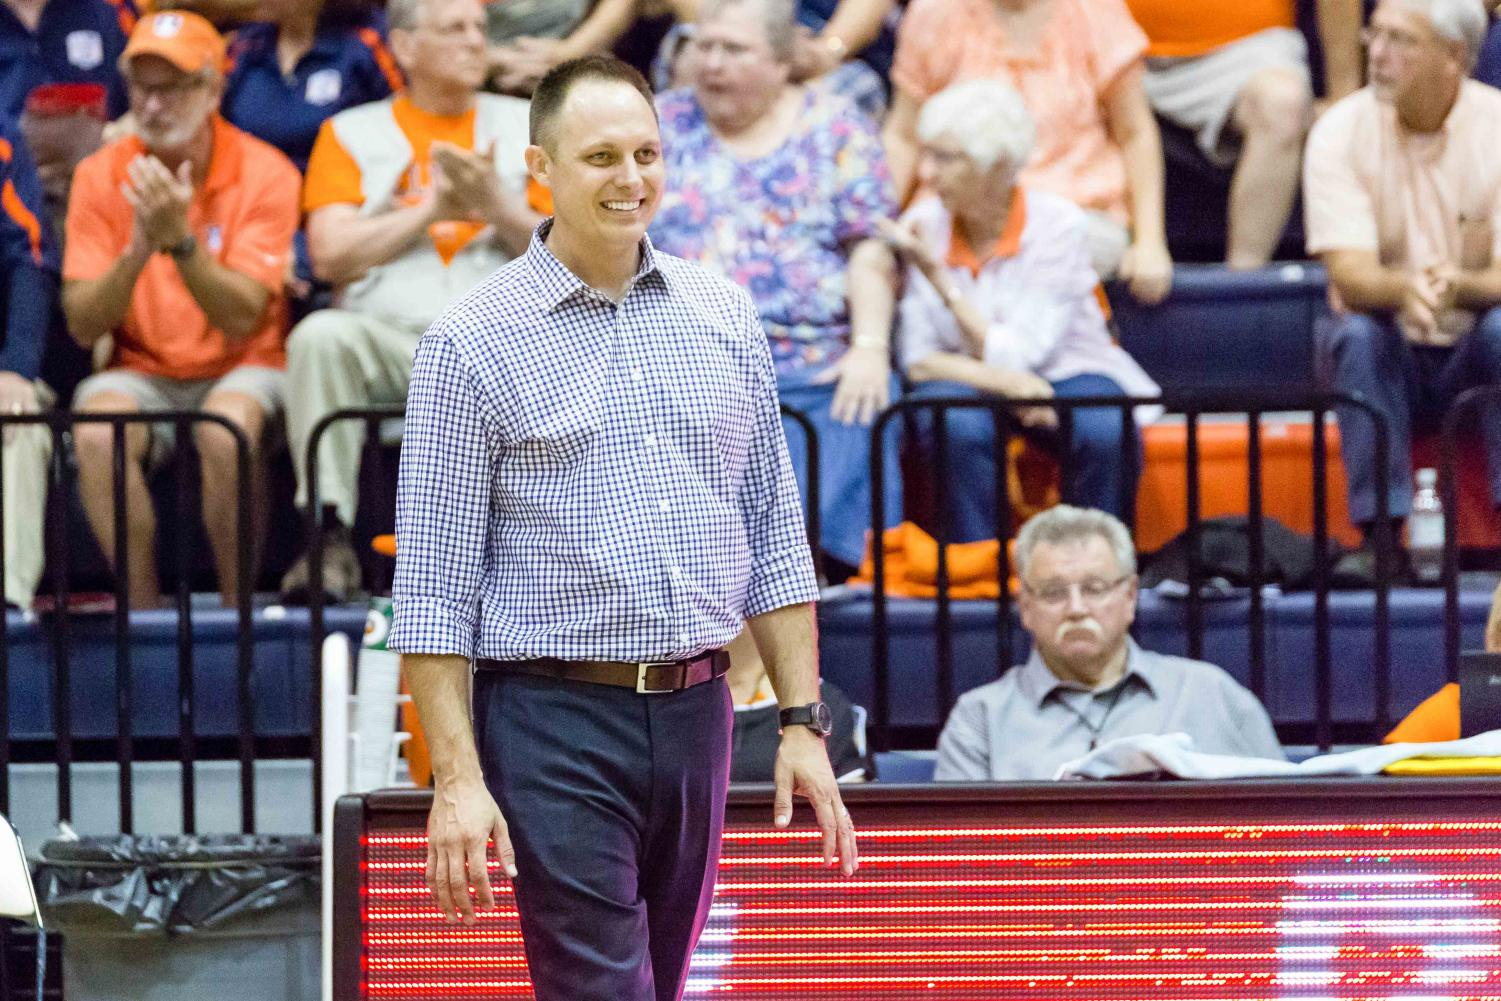 Illinois head coach Chris Tamas watches his team from the sideline during the match against Stanford at Huff Hall on Friday, September 8. The Illini lost 3-0.